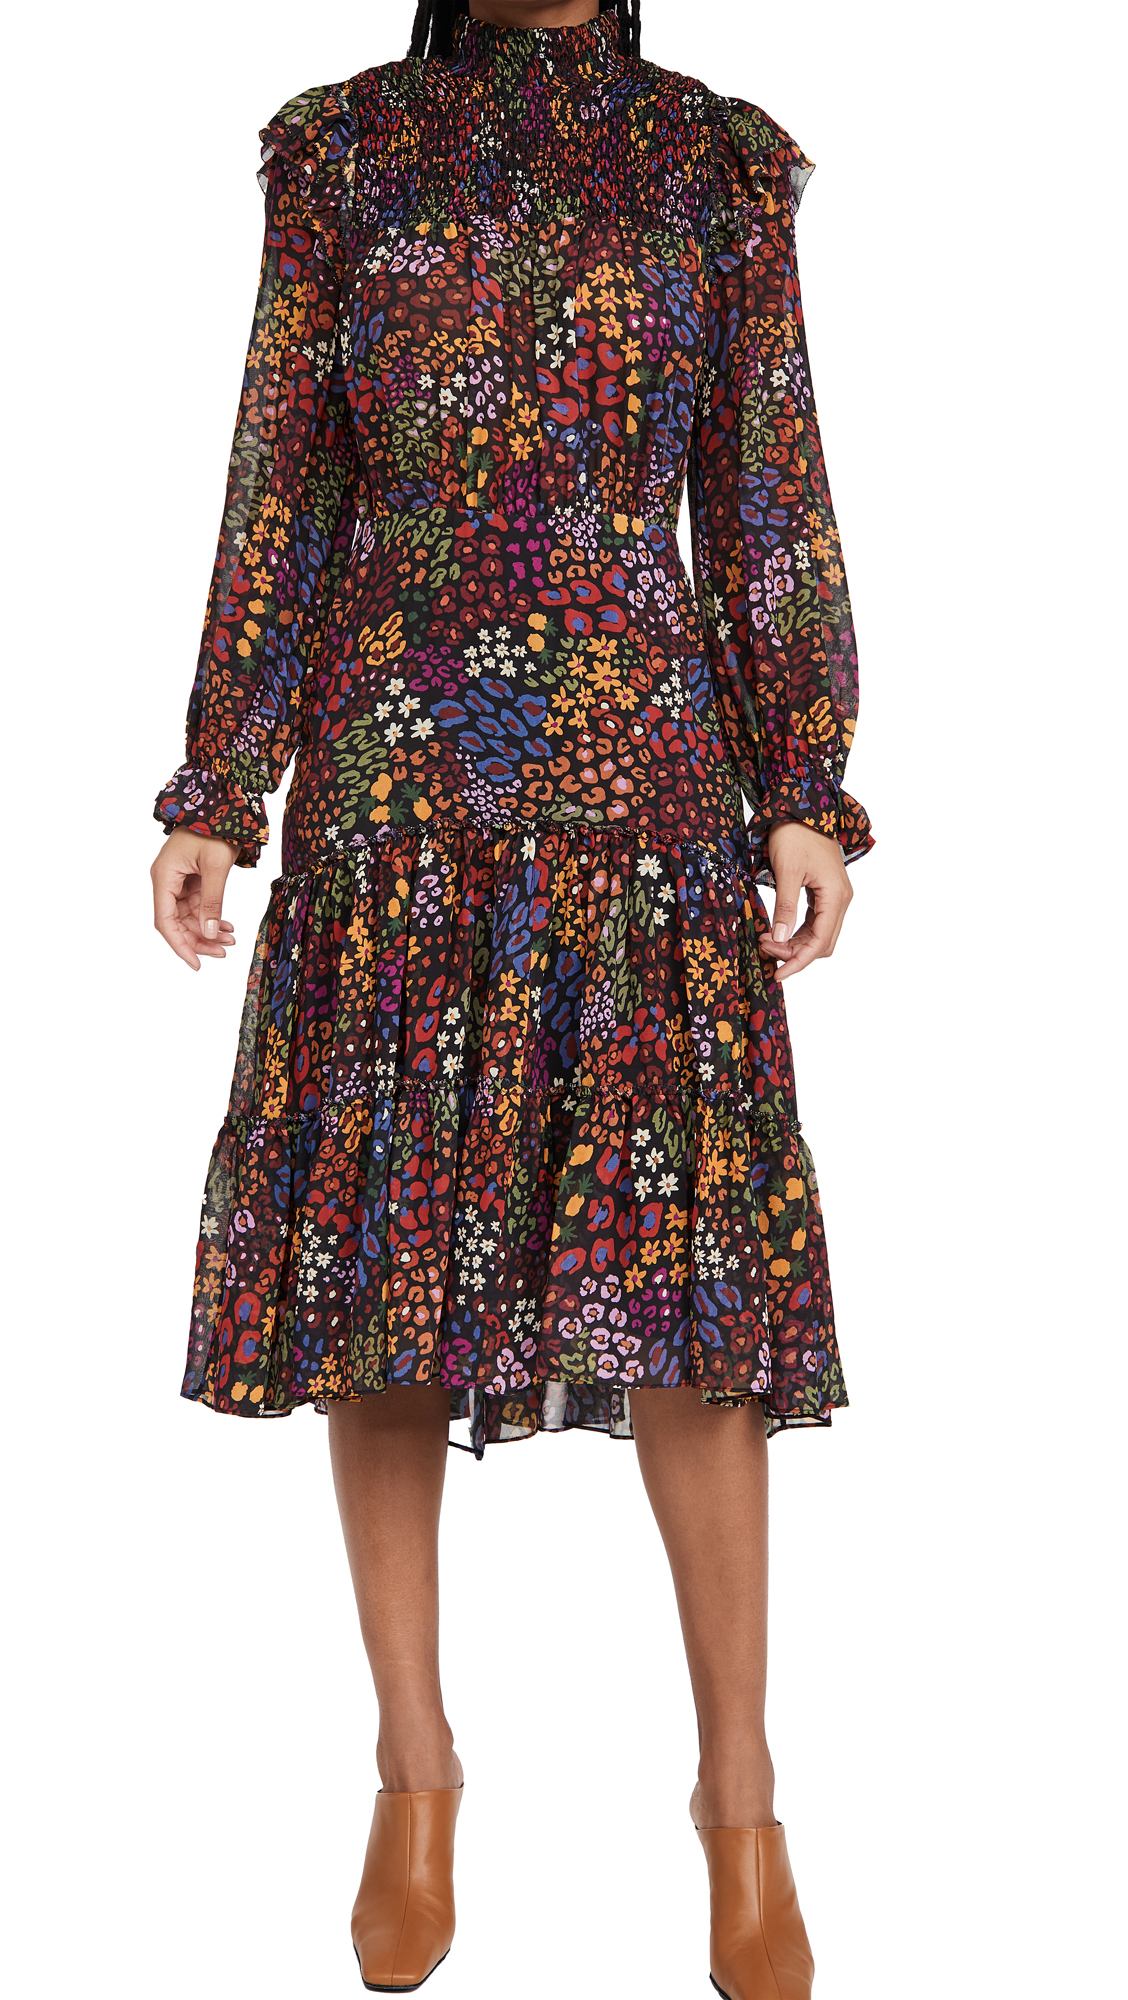 FARM Rio Wild Mix Midi Dress